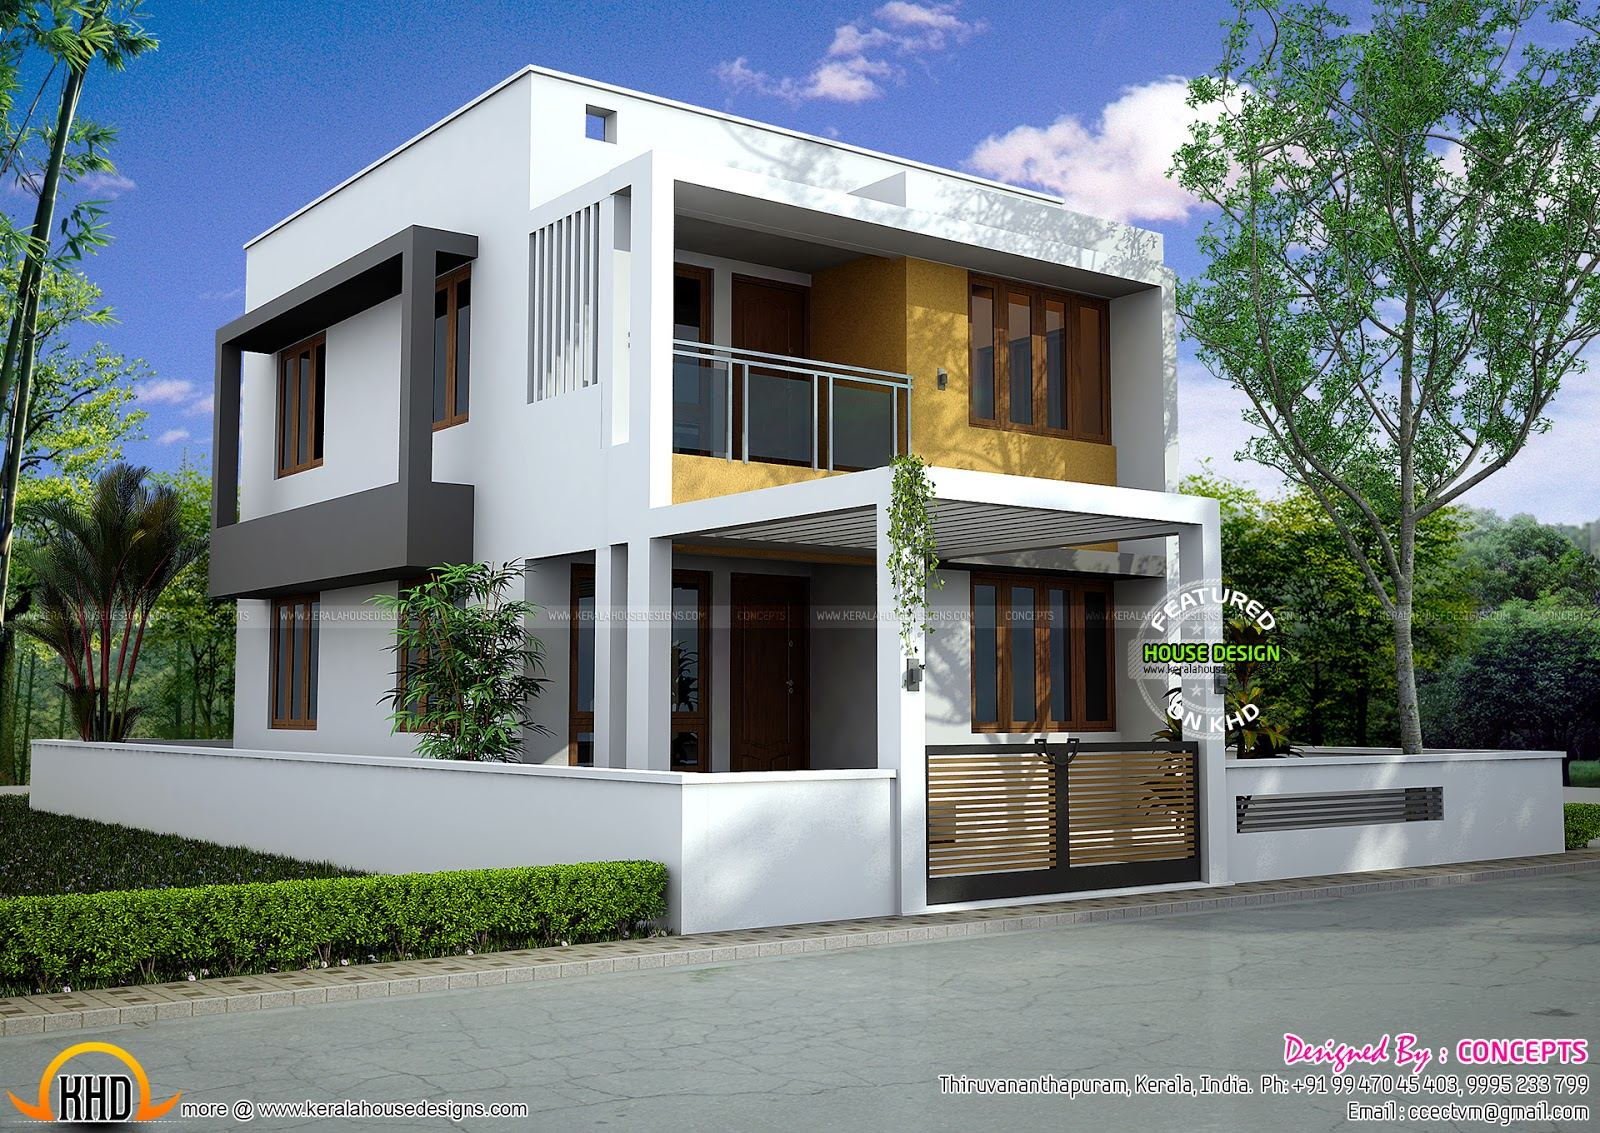 Floor plan of modern 3 bedroom house kerala home design for 2 bedroom house designs in india